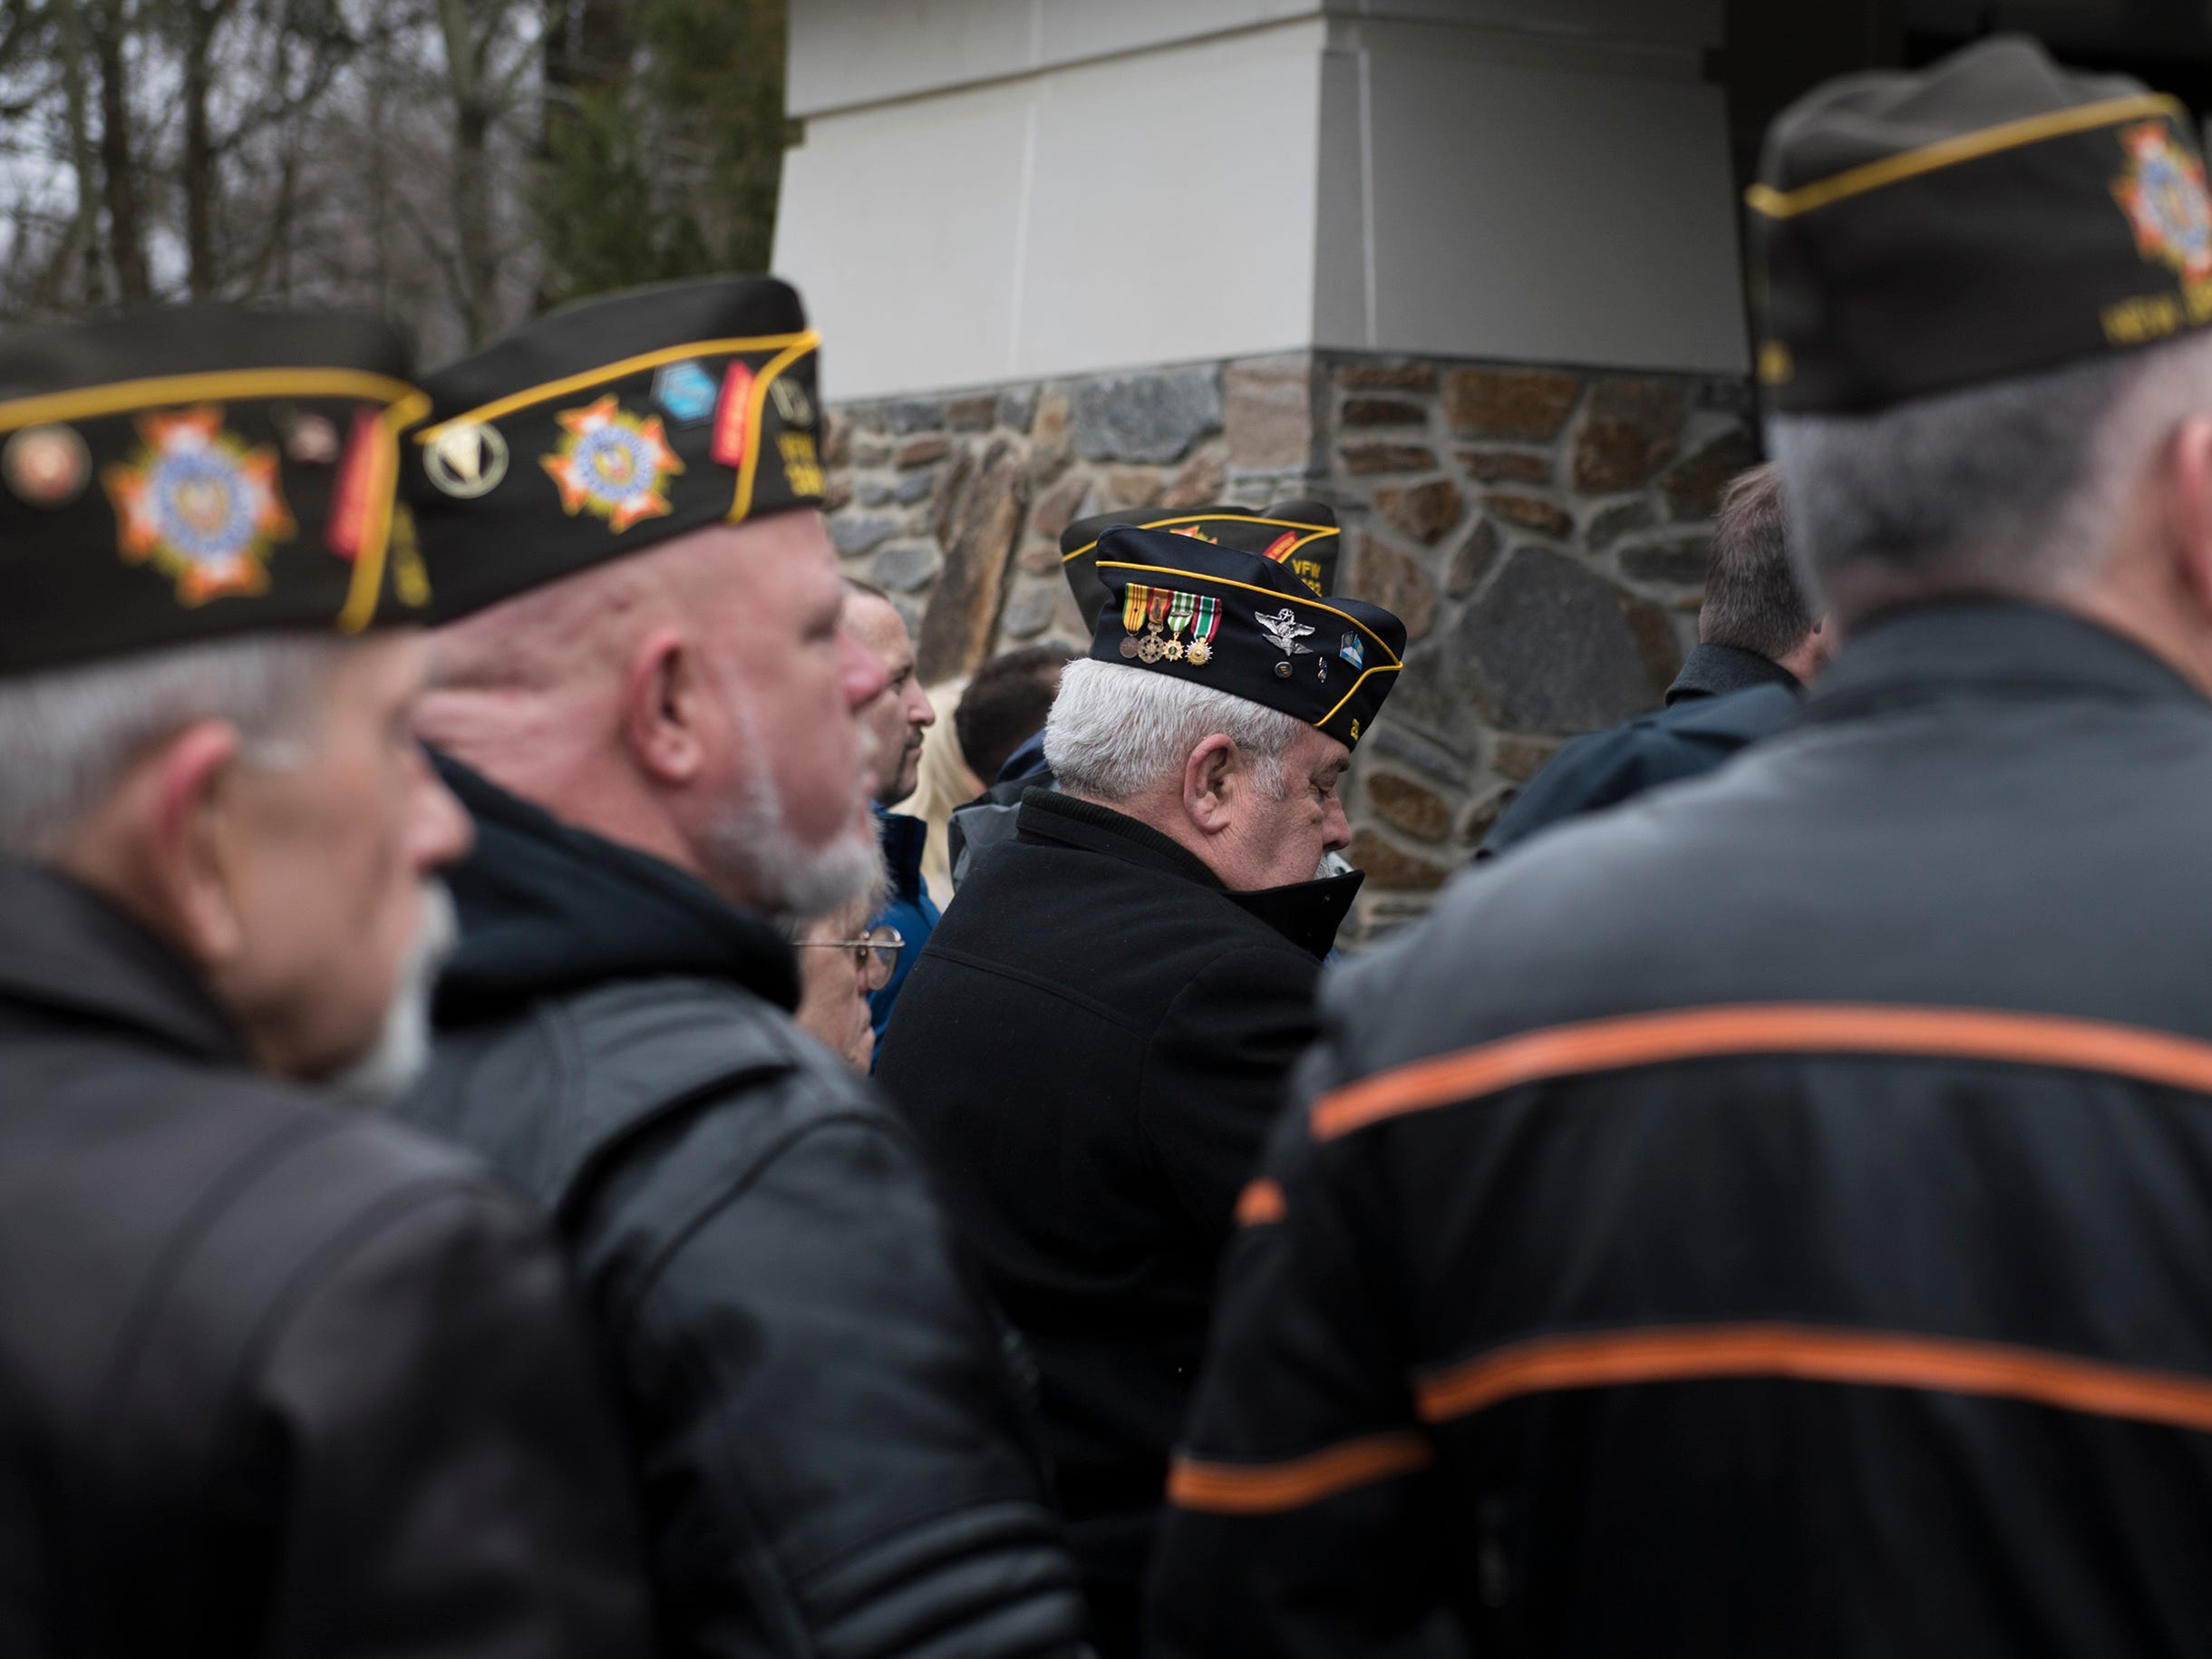 Several hundreds gather as a funeral for Vietnam veteran Peter Turnpu is held Friday, Jan. 18, 2019 in North Hanover, N.J.